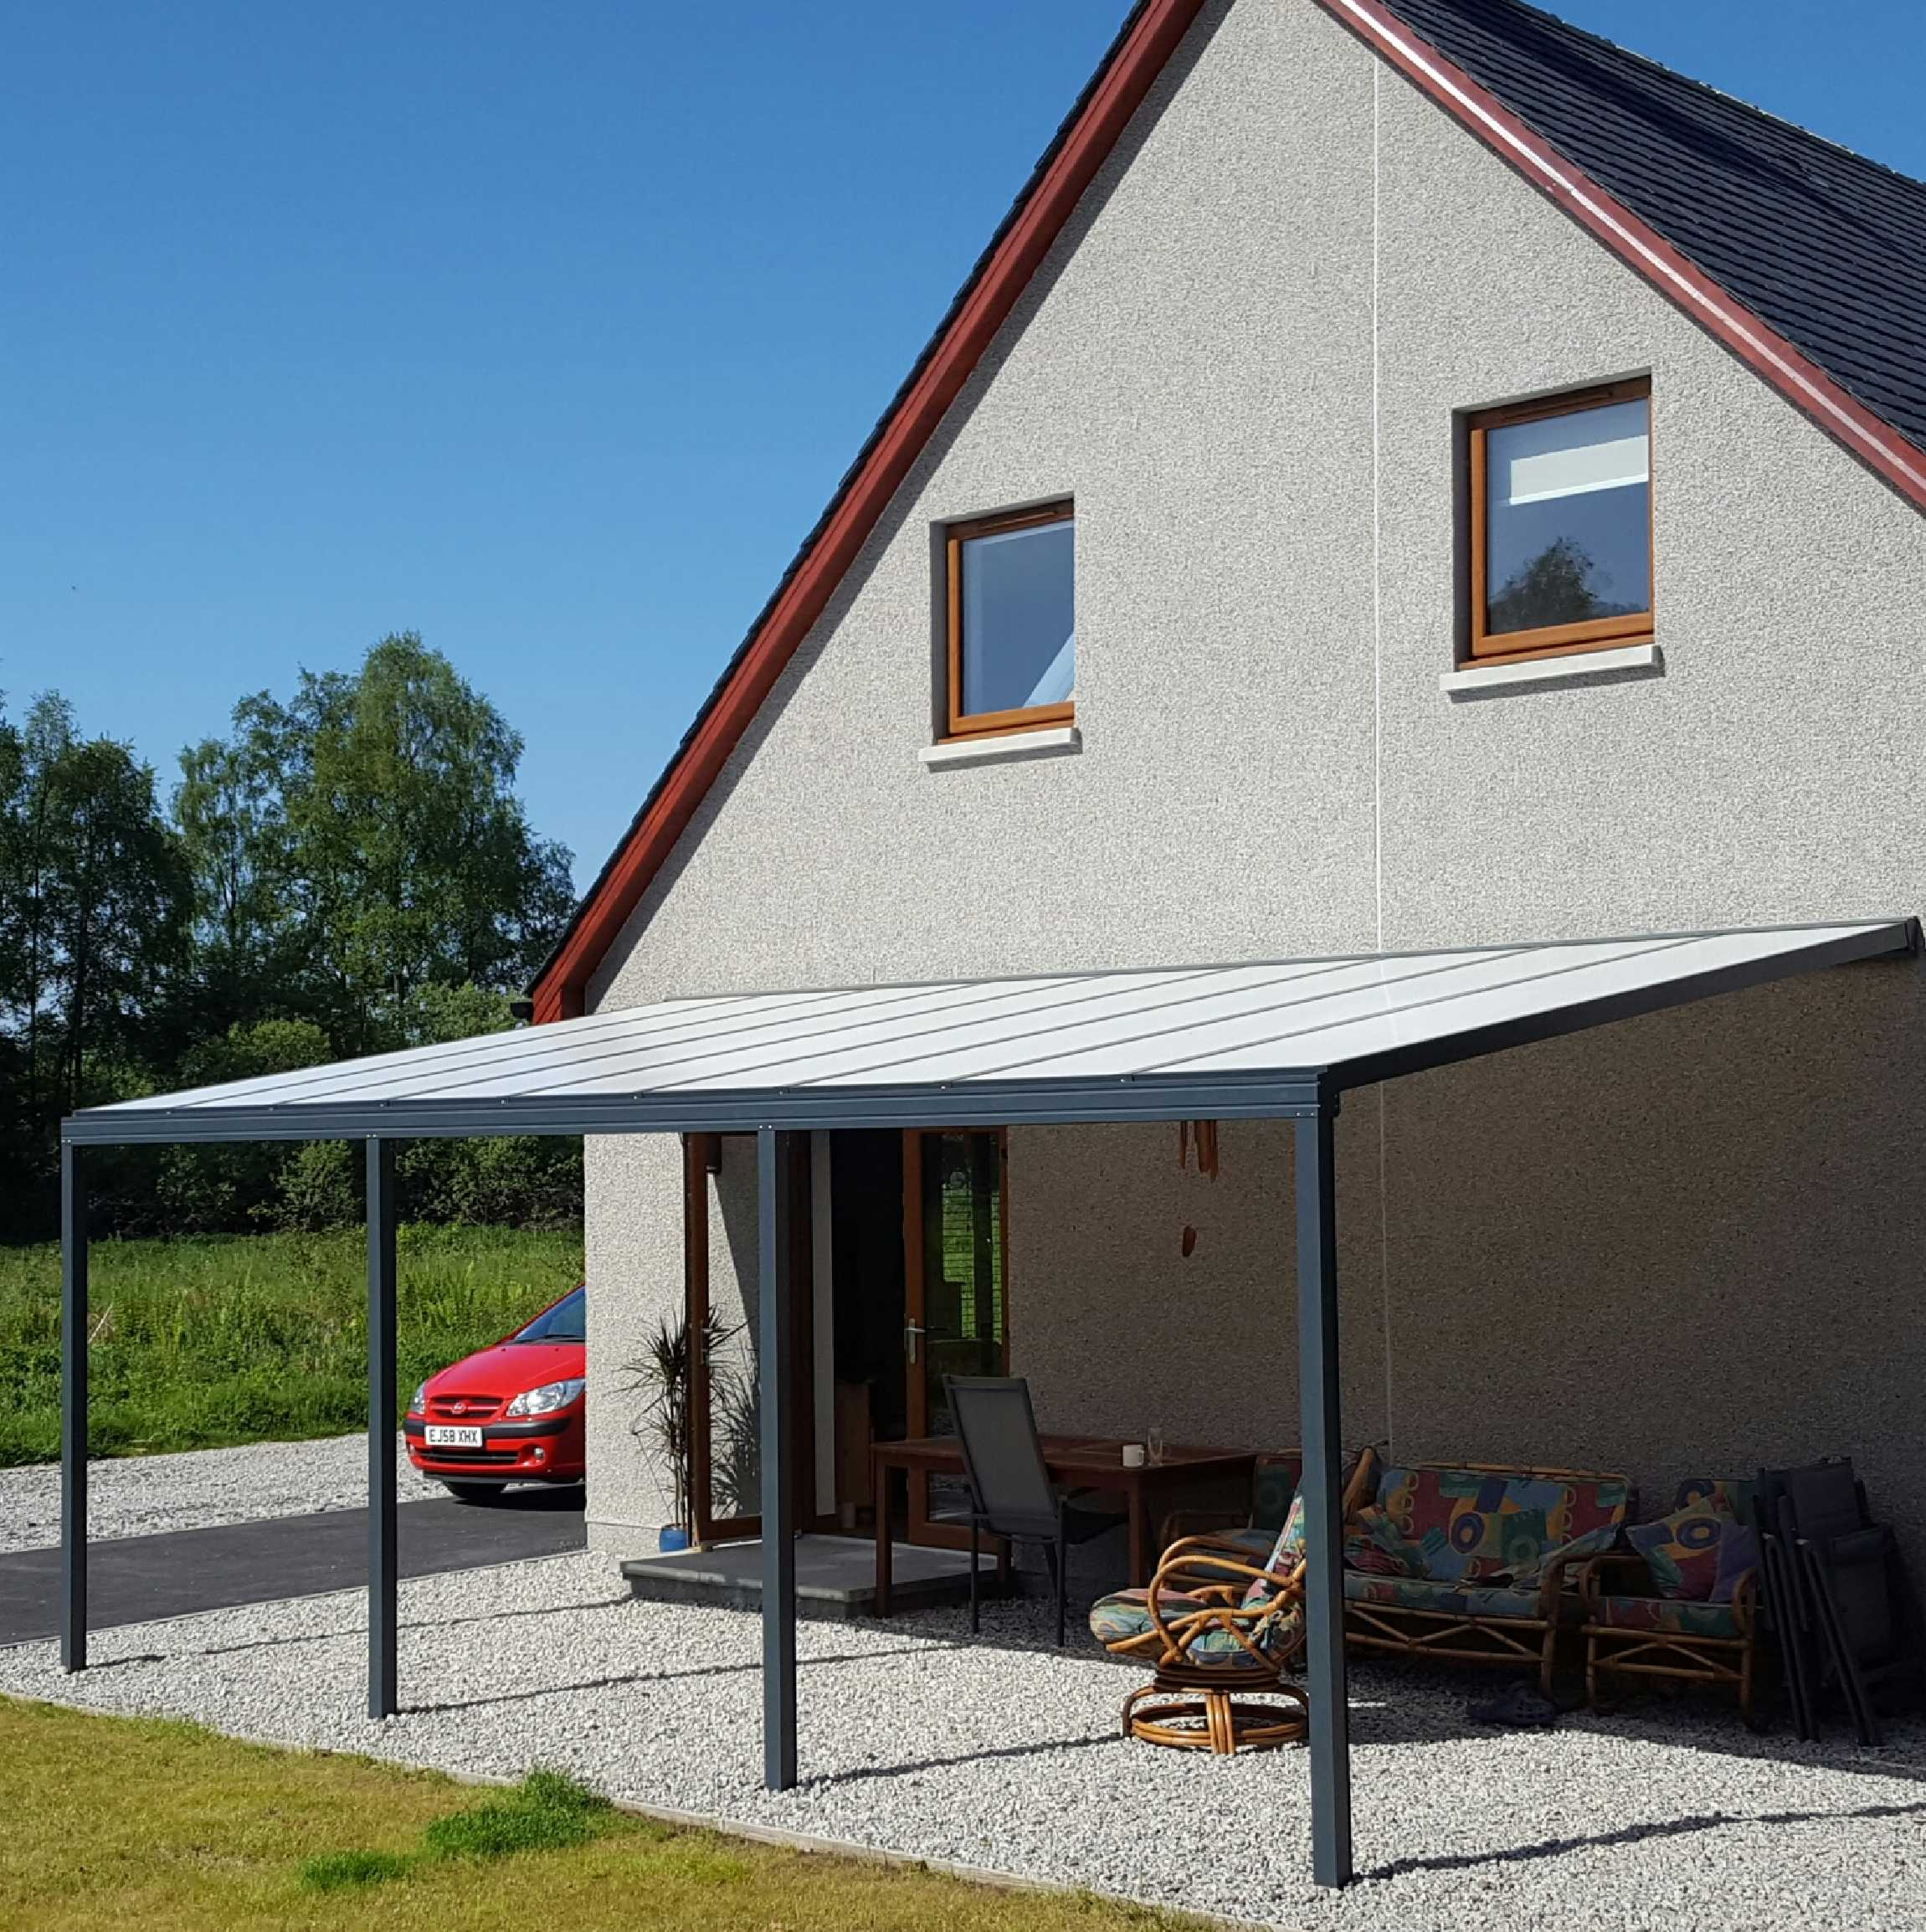 Great selection of Omega Smart Lean-To Canopy, Anthracite Grey, 16mm Polycarbonate Glazing - 8.4m (W) x 2.5m (P), (4) Supporting Posts